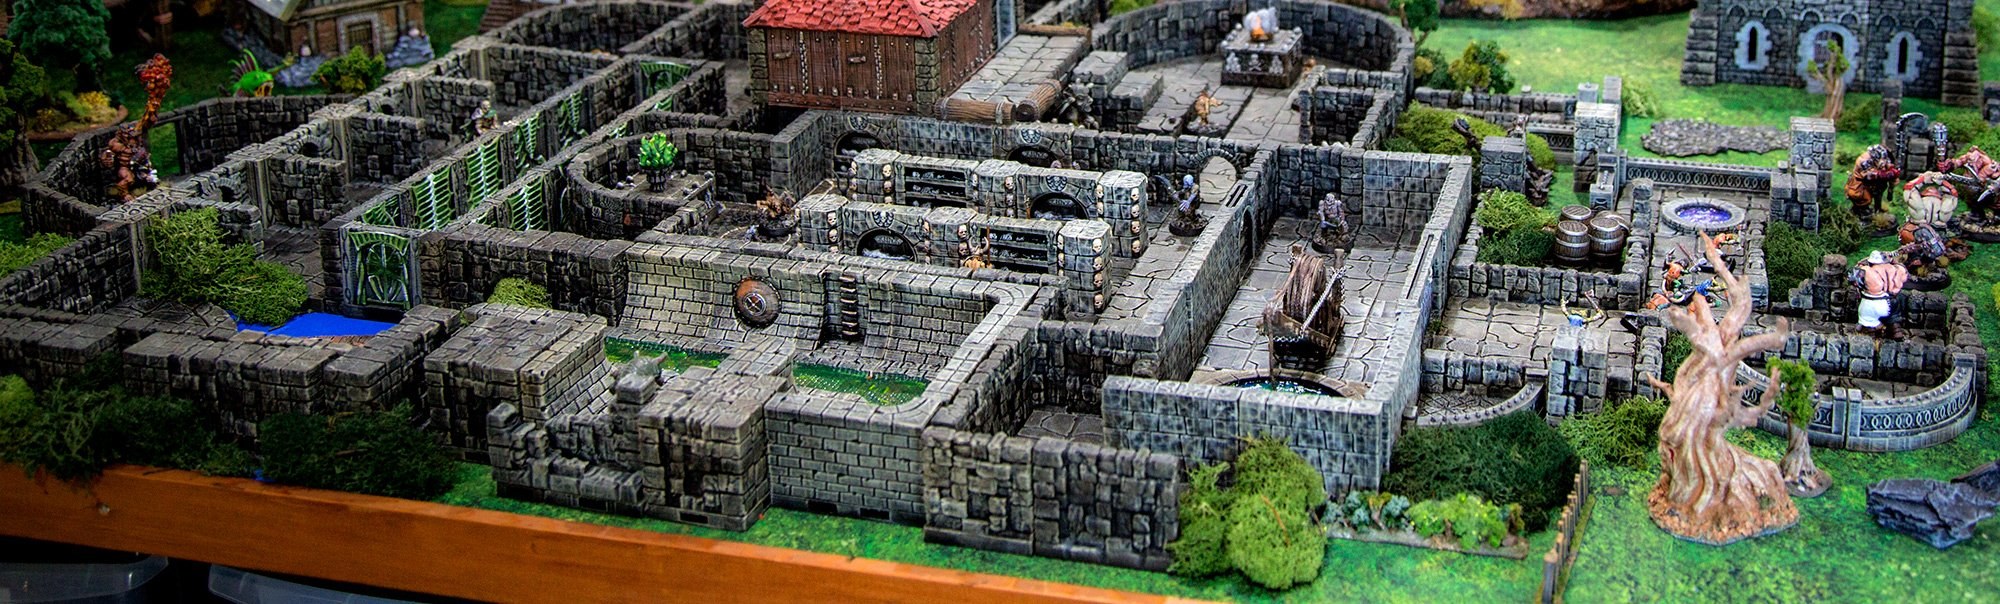 photograph regarding 3d Printable Dungeon Tiles named 3D Printable Dungeon Tiles - Printable Surroundings